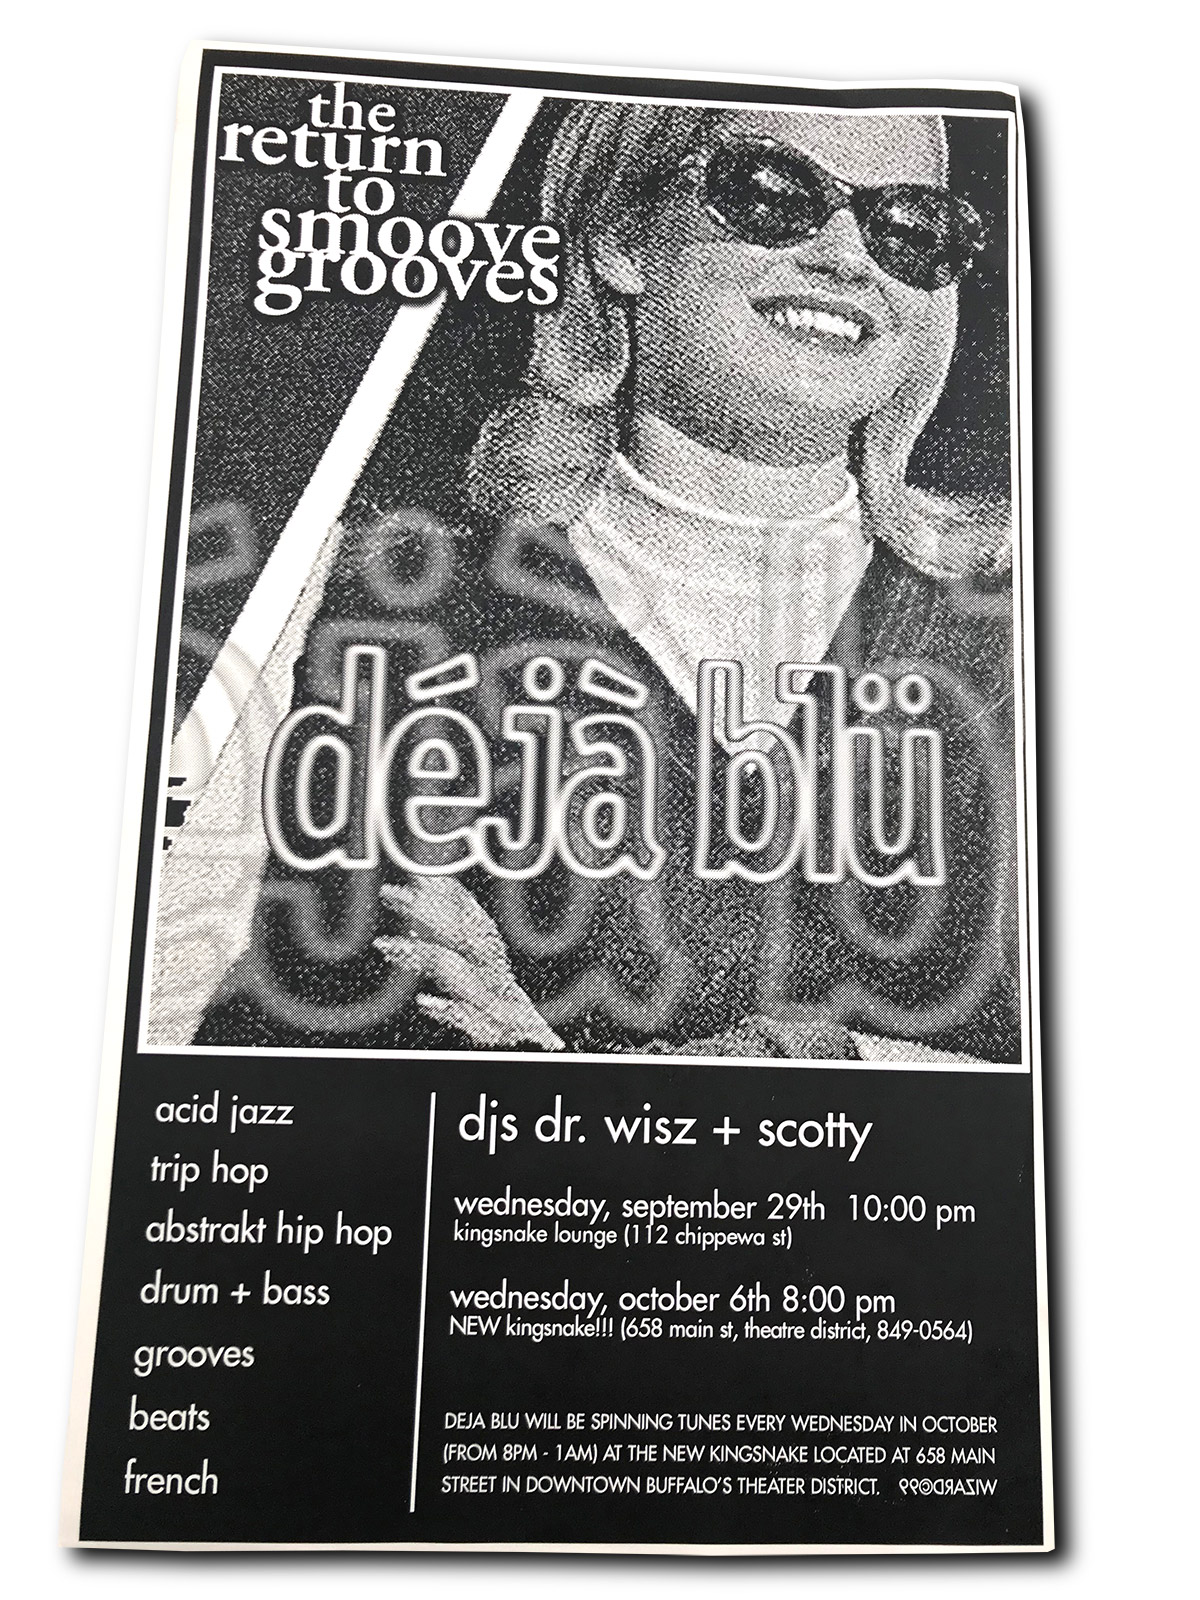 dejablu, deja blu, DJ Dr Wisz, DJ Scotty, king snake lounge, poster design, mark wisz